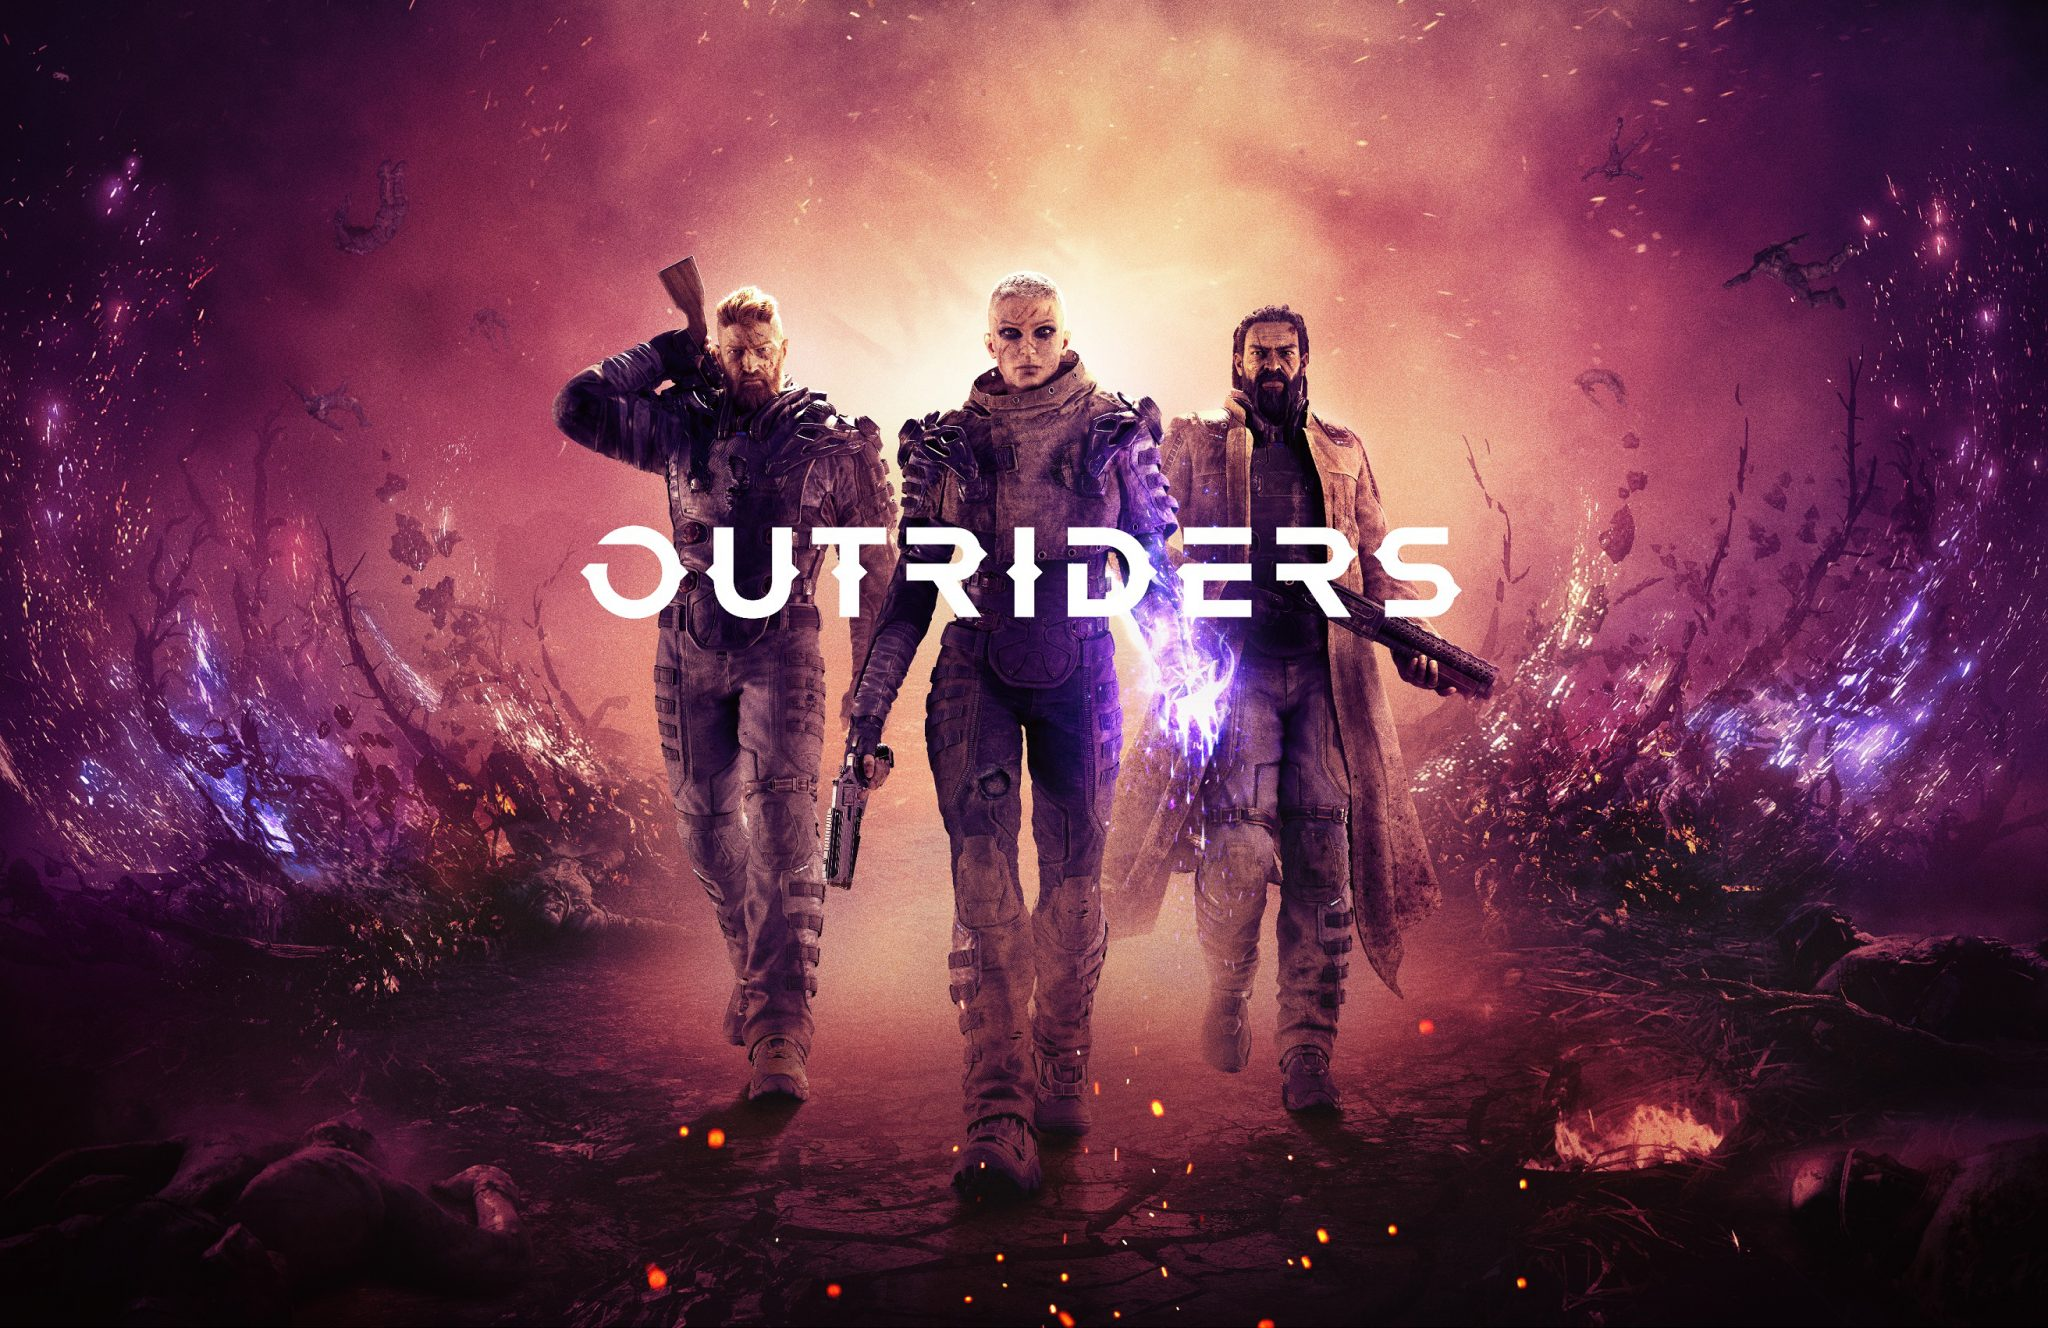 outriders-cover-scaled-e1581441039346